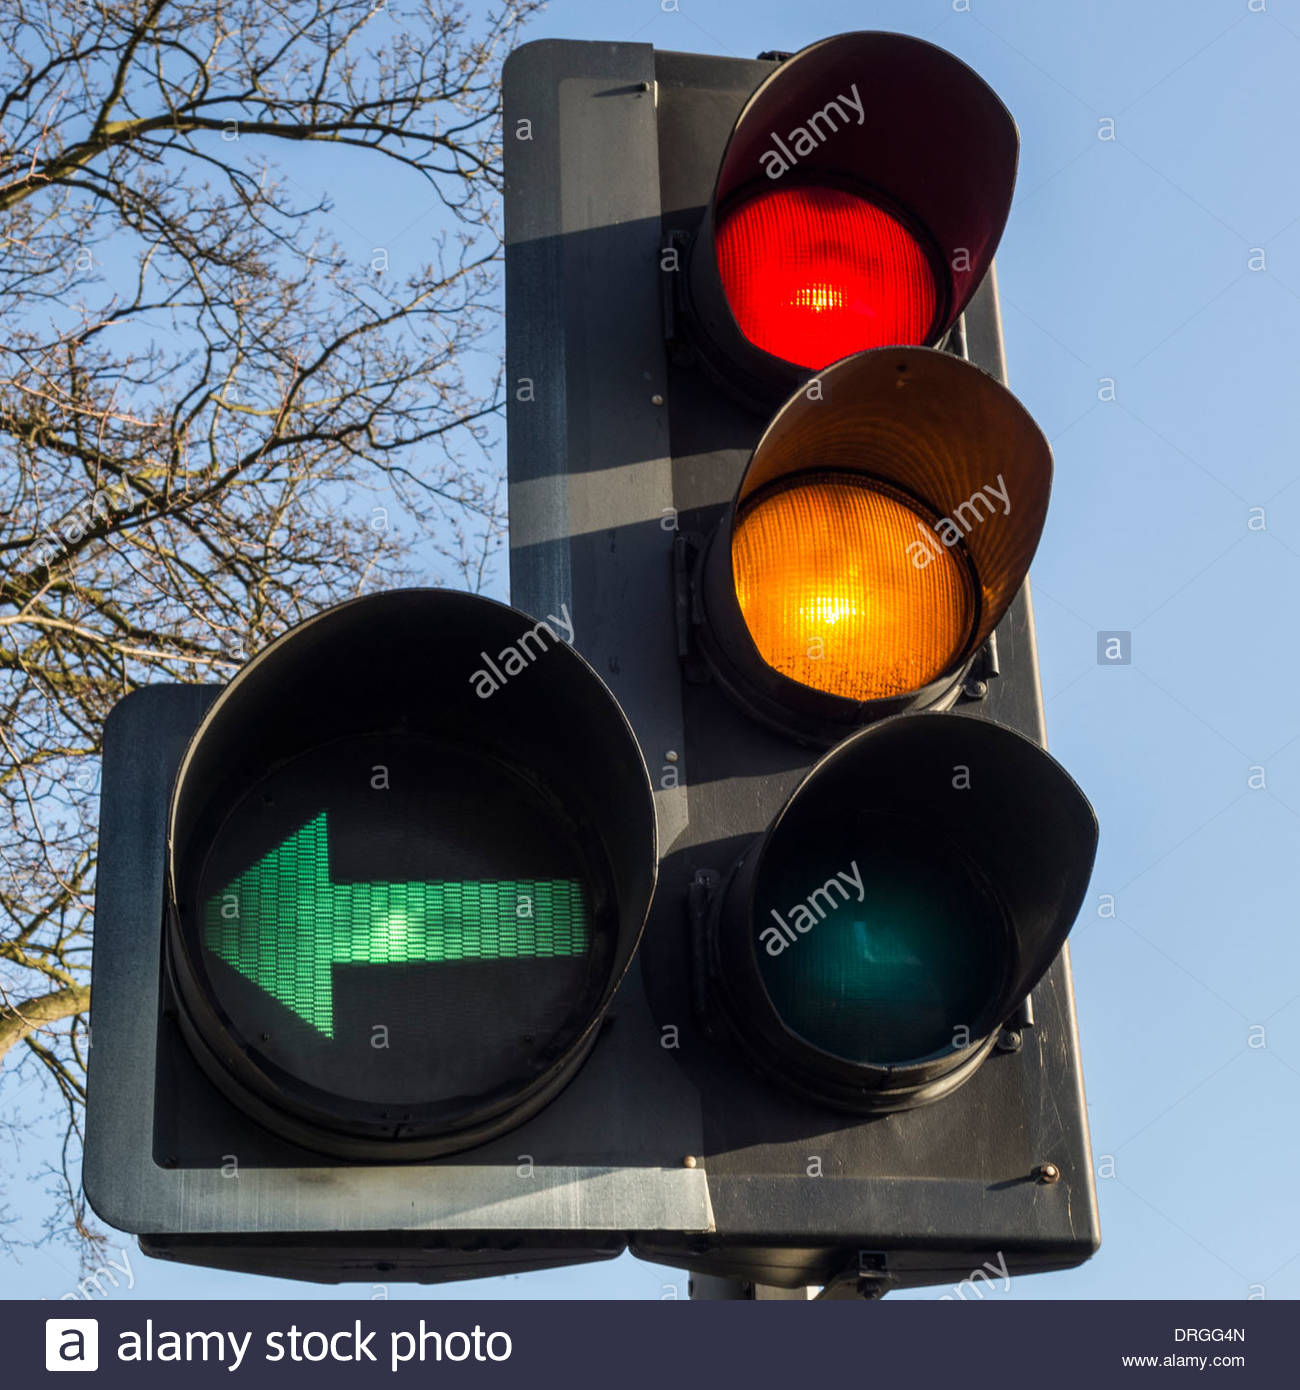 Attractive Traffic Light Showing Red And Amber Forward Signal Plus A Left Green Filter Photo